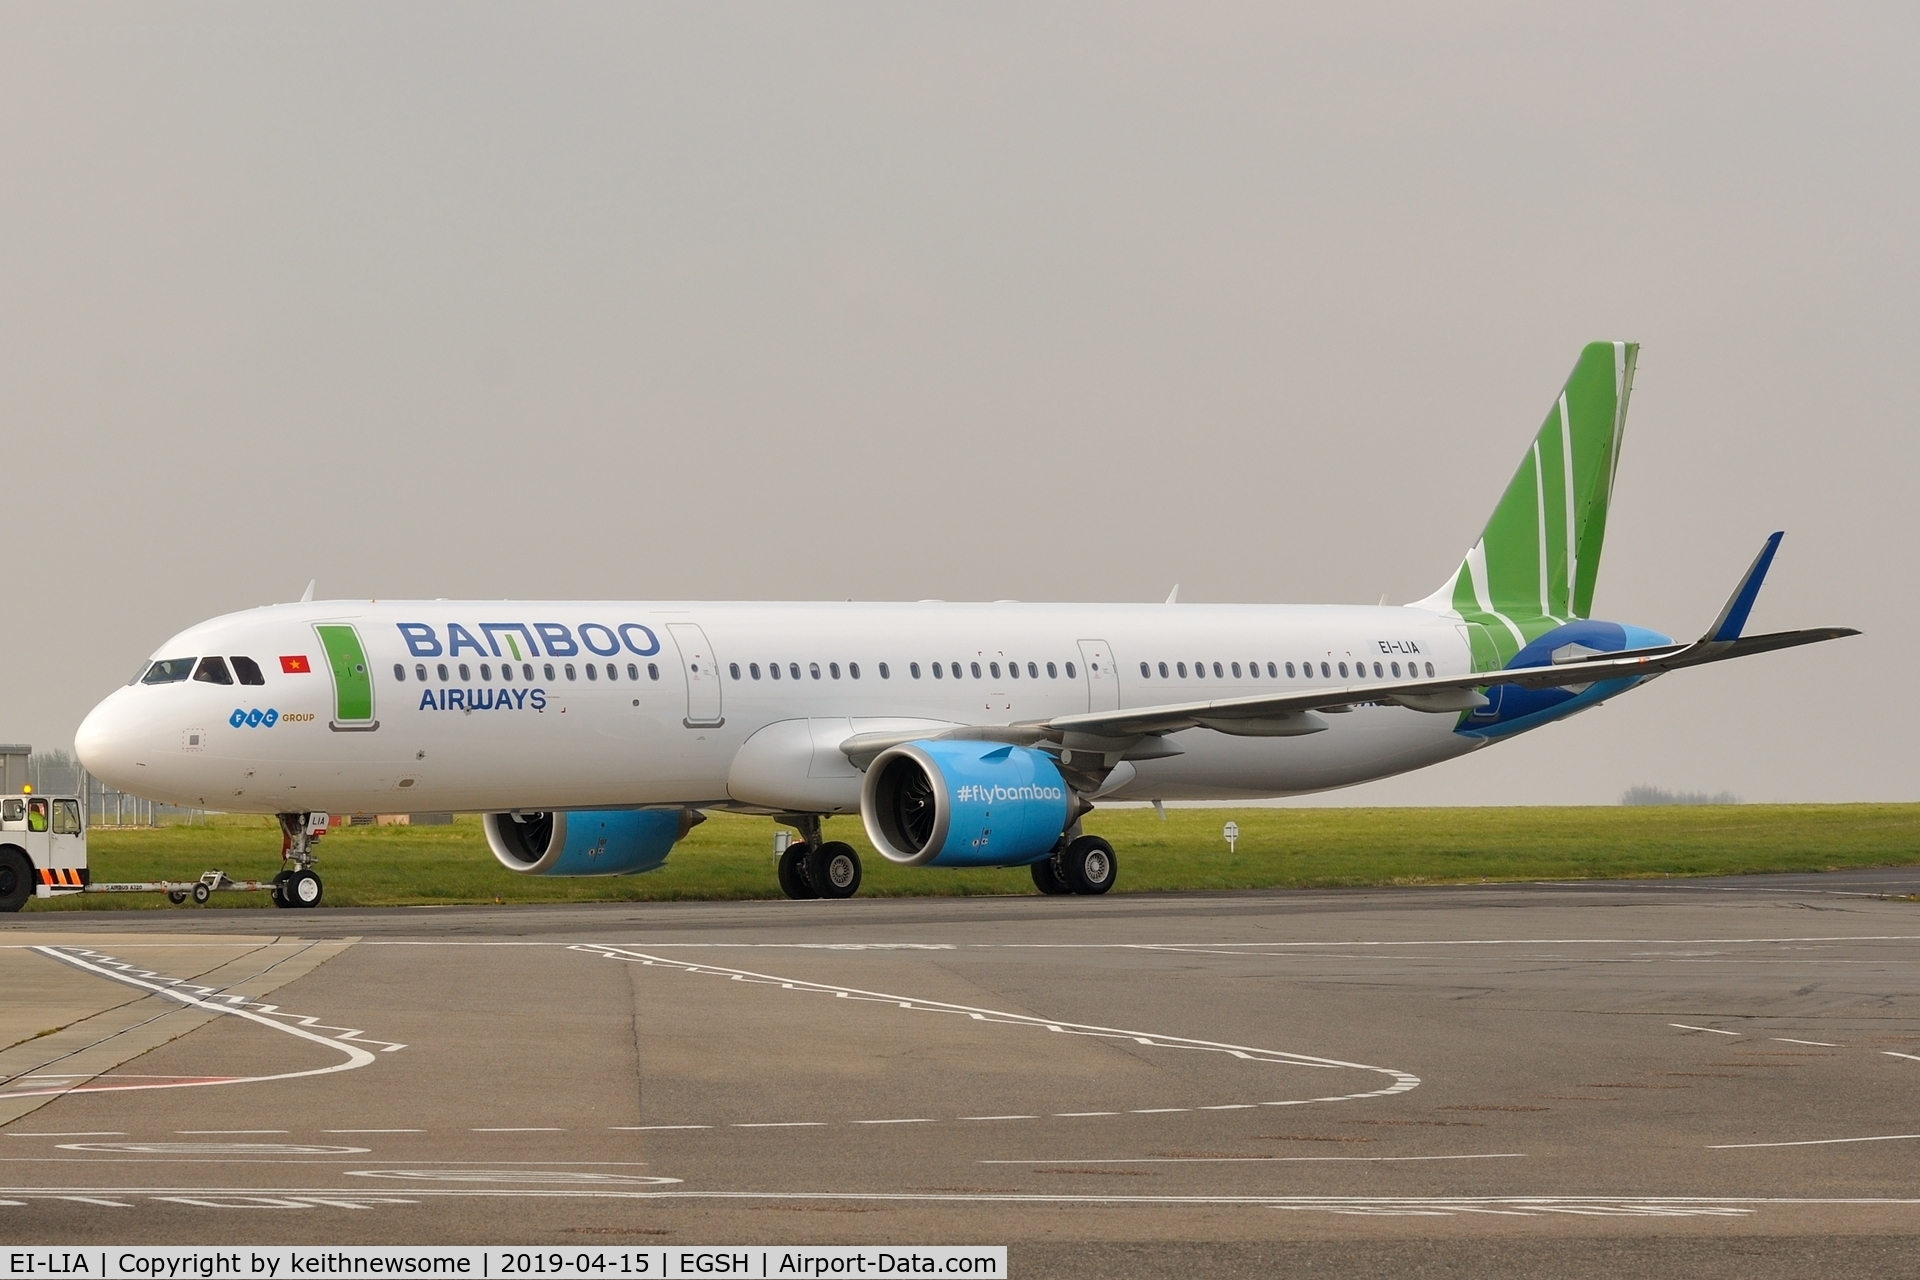 EI-LIA, 2018 Airbus A321-251N C/N 8260, Removed from spray shop with Bamboo Airways colour scheme.